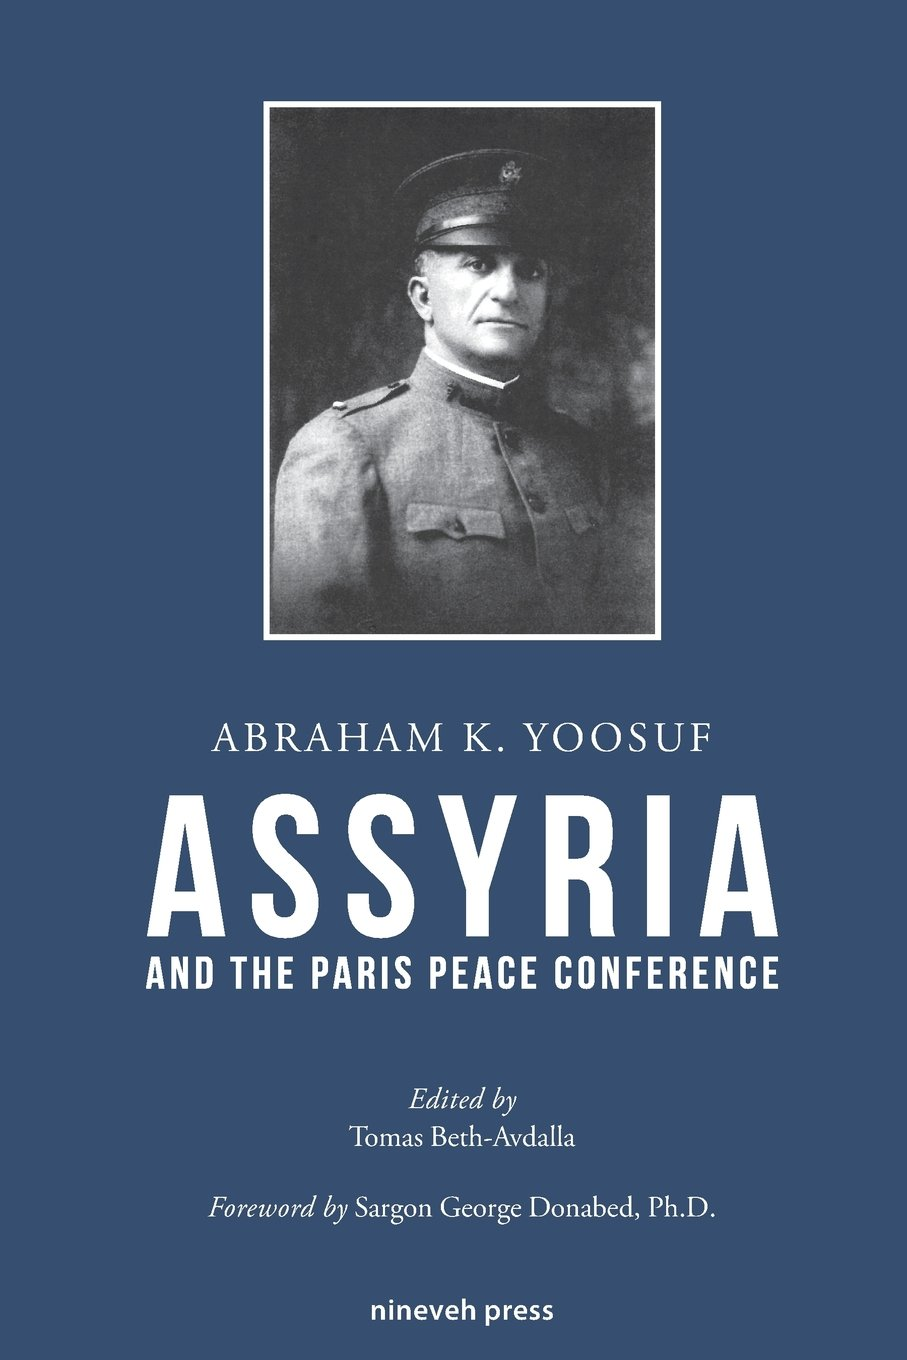 assyria-and-the-paris-peace-conference